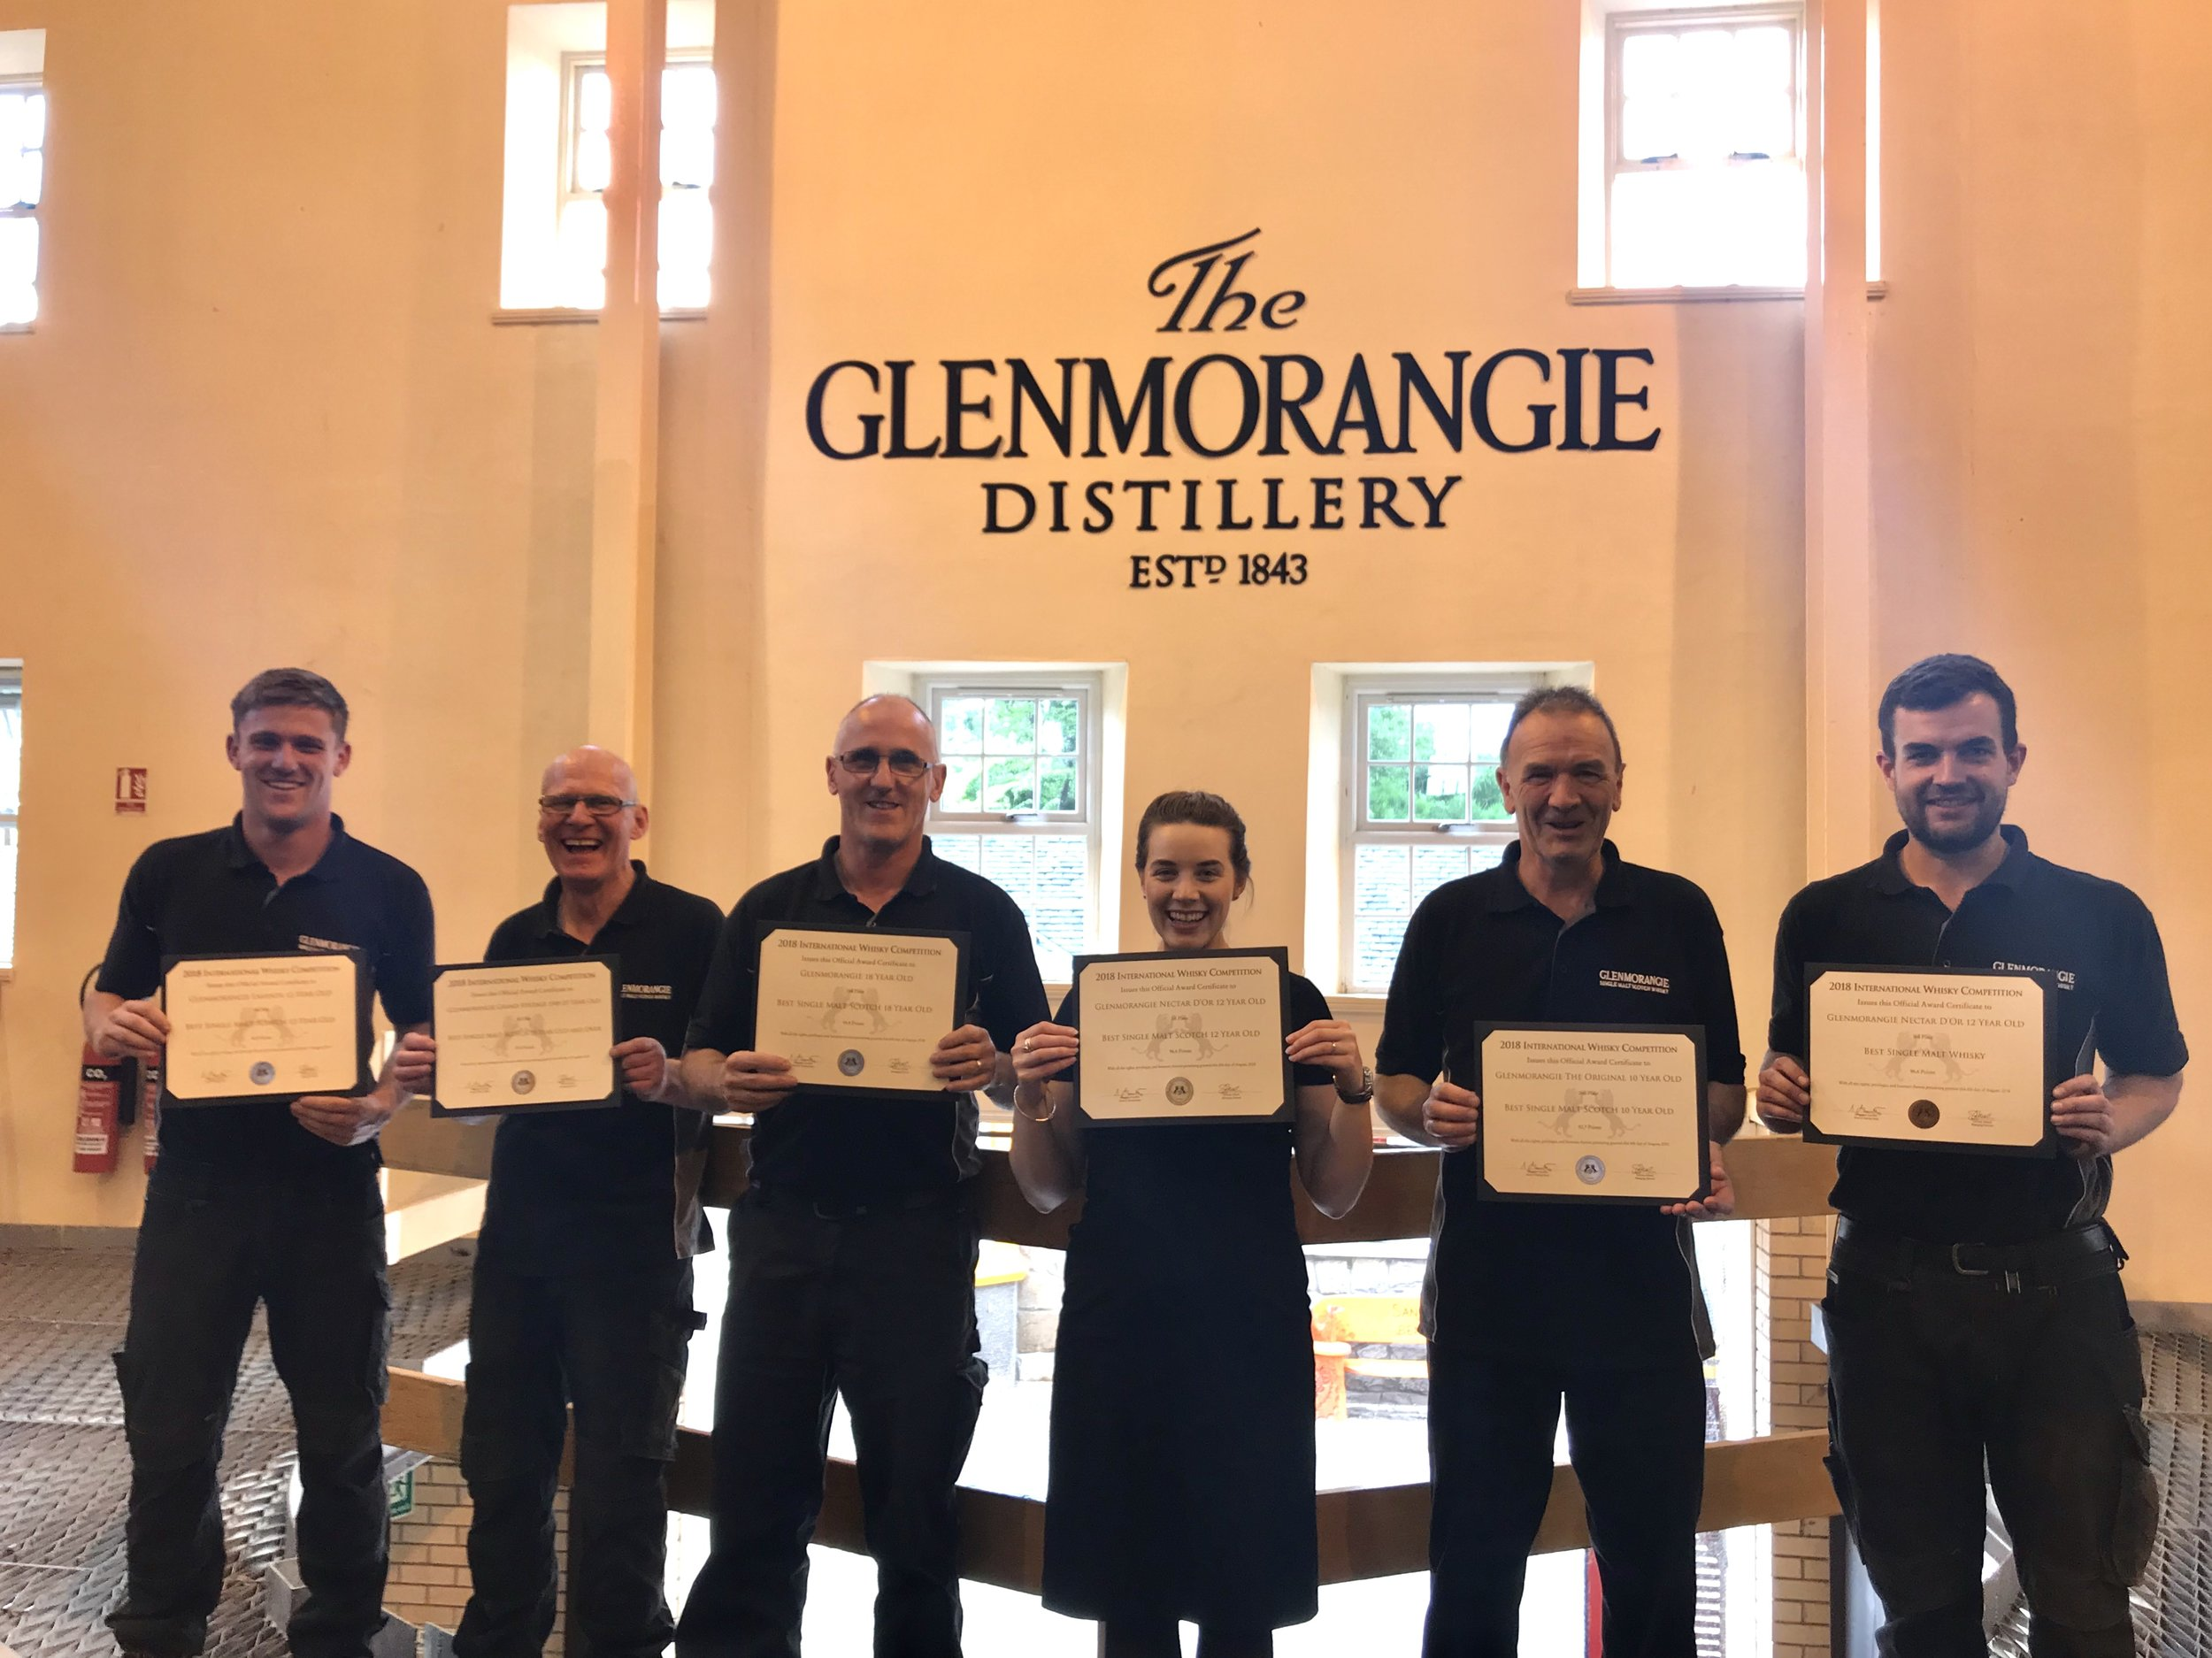 Awarding The Glenmorangie Distillery